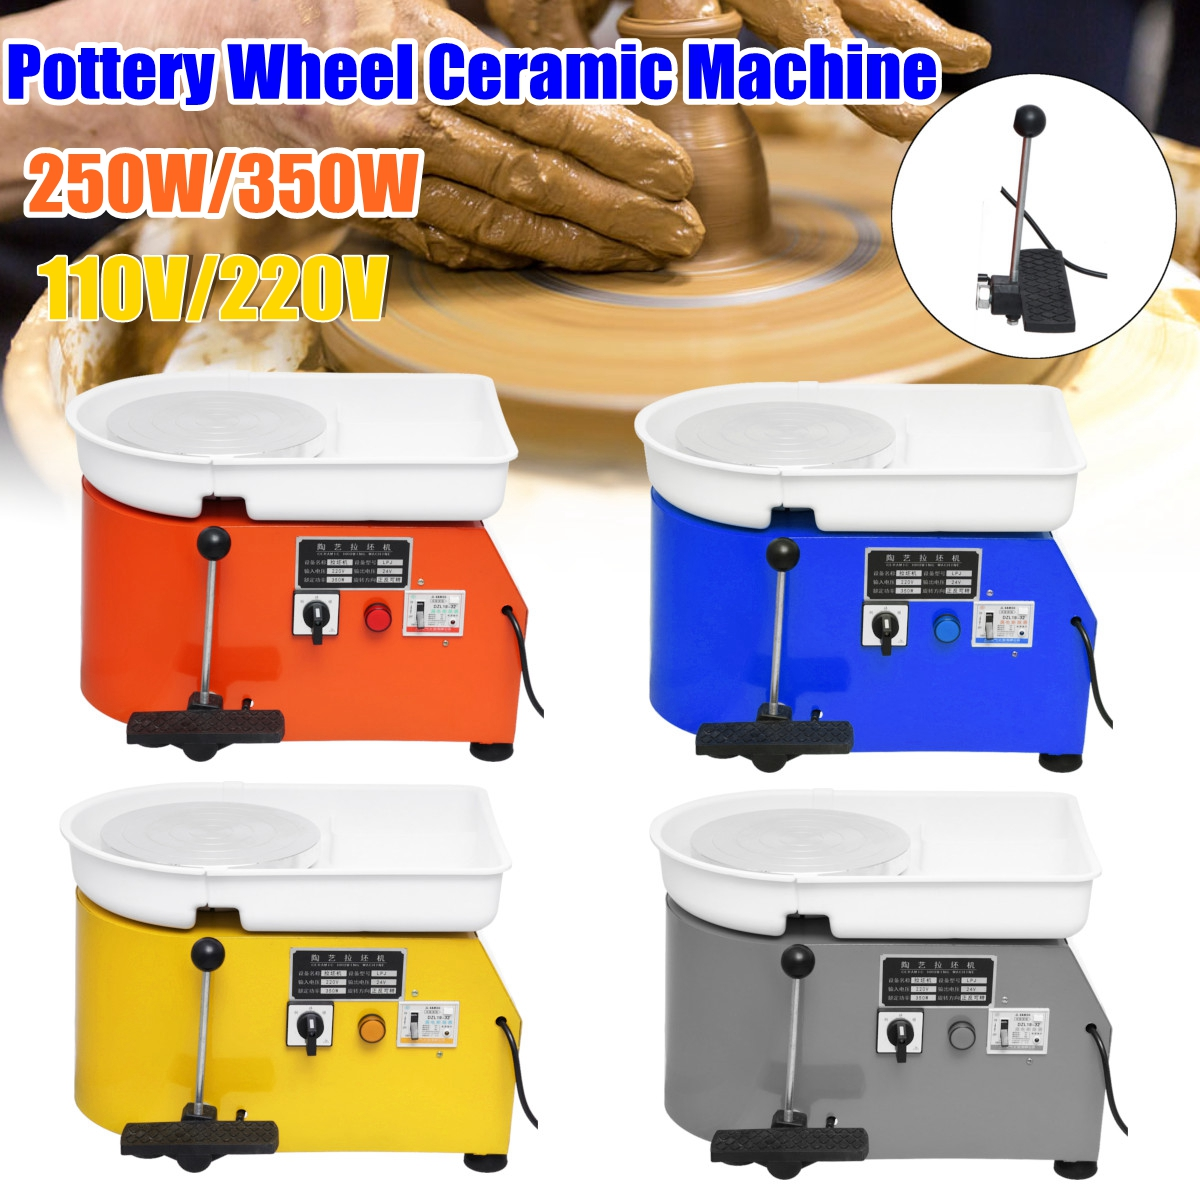 110V/220V Pottery Forming Machine 250W/350W Electric Pottery Wheel DIY Clay Tool with Tray For Ceramic Work Ceramics polish pottery spoon rest blue bells